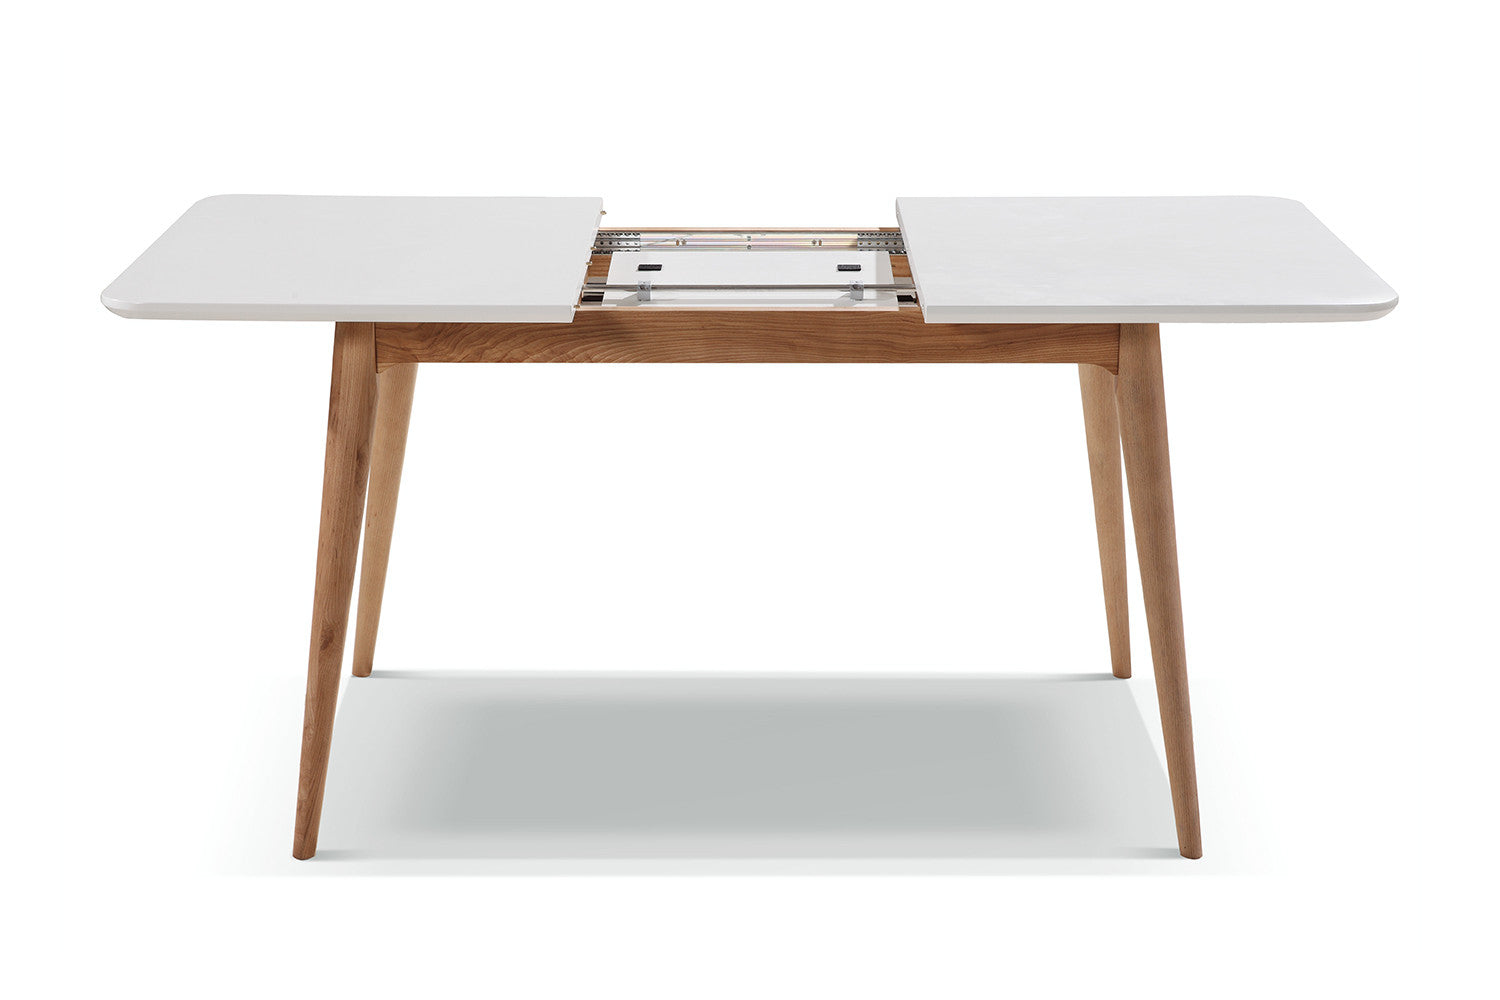 Table de cuisine extensible vintage breggia dewarens - Table de cuisine a rallonge ...